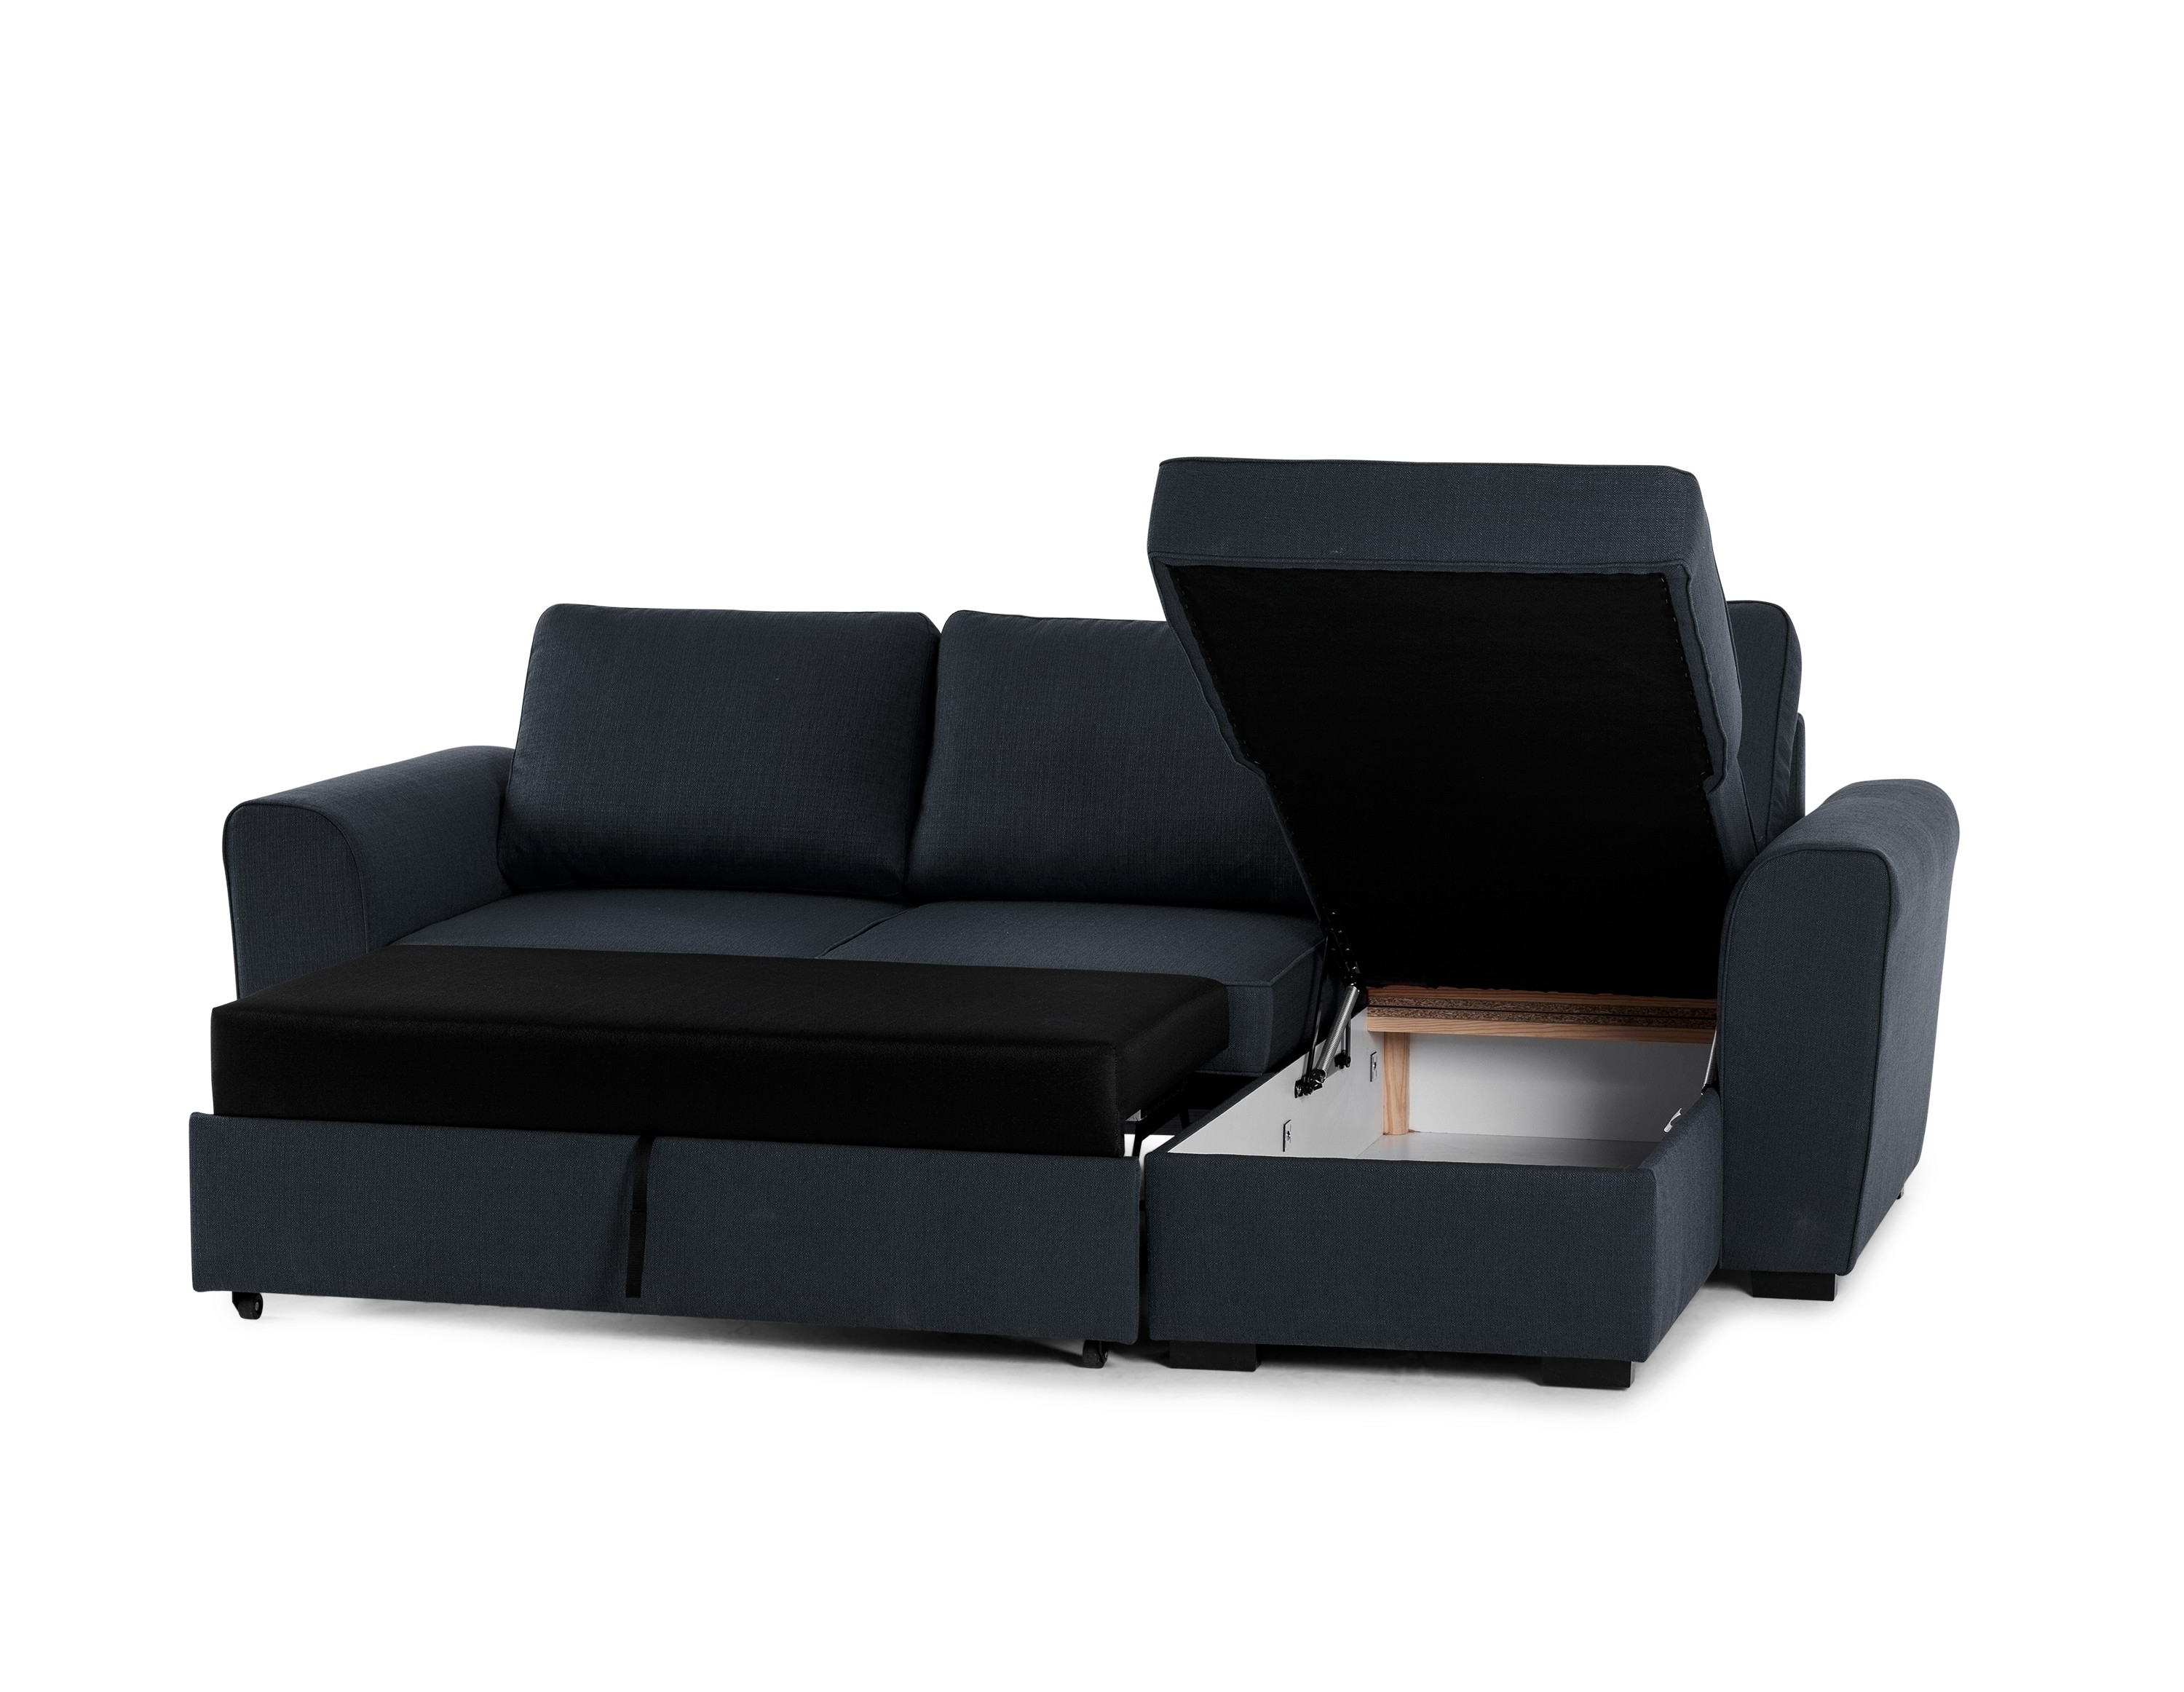 Best And Newest Sectional Sofas With Oversized Ottoman In Sectional Sofa Ottoman Convertible Sectional Sofa Sectional Sofa (View 12 of 15)